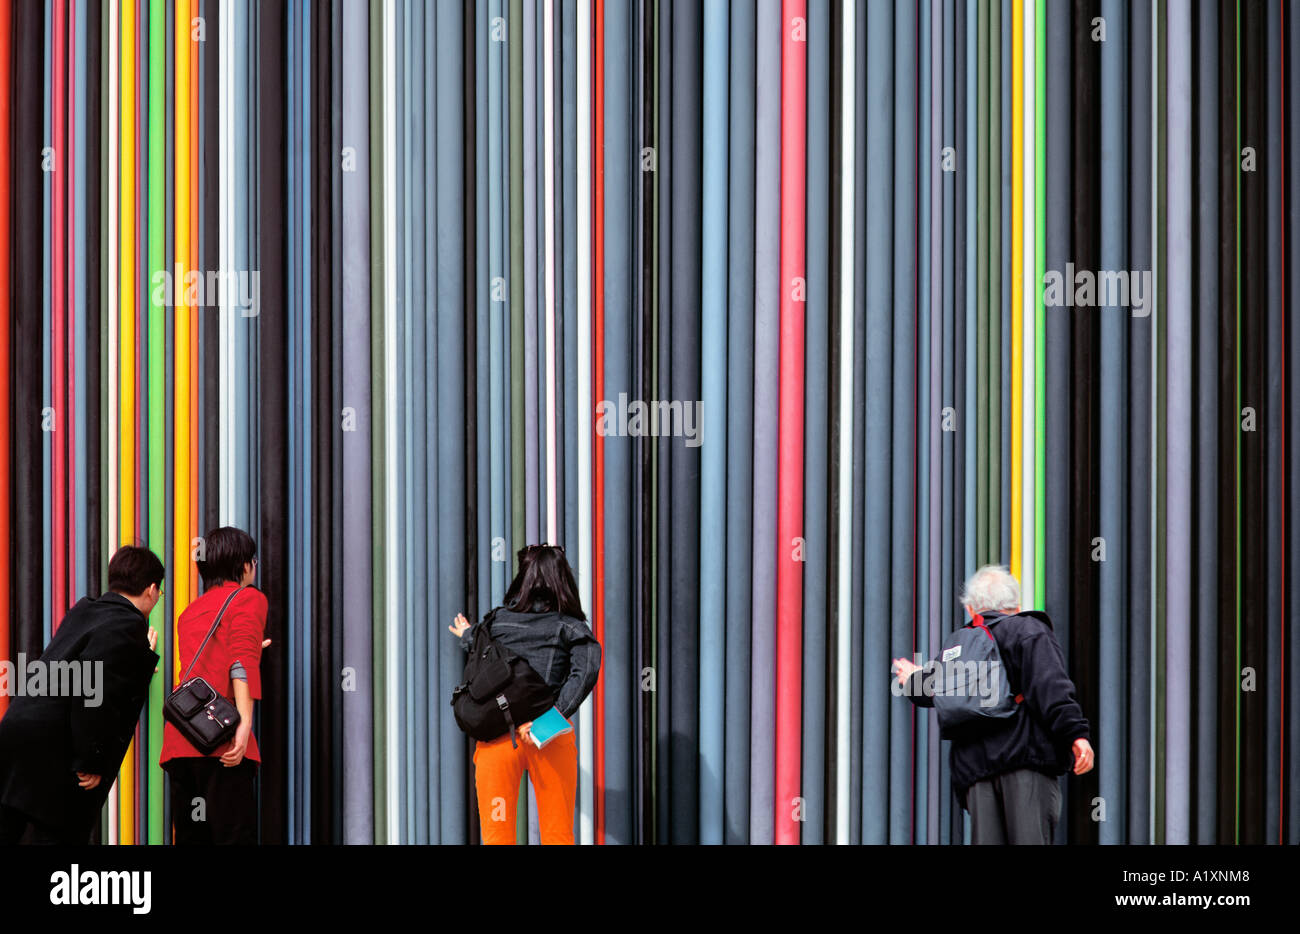 People Touching The Cheminee D Aeration At La Defense Paris Stock Photo Alamy